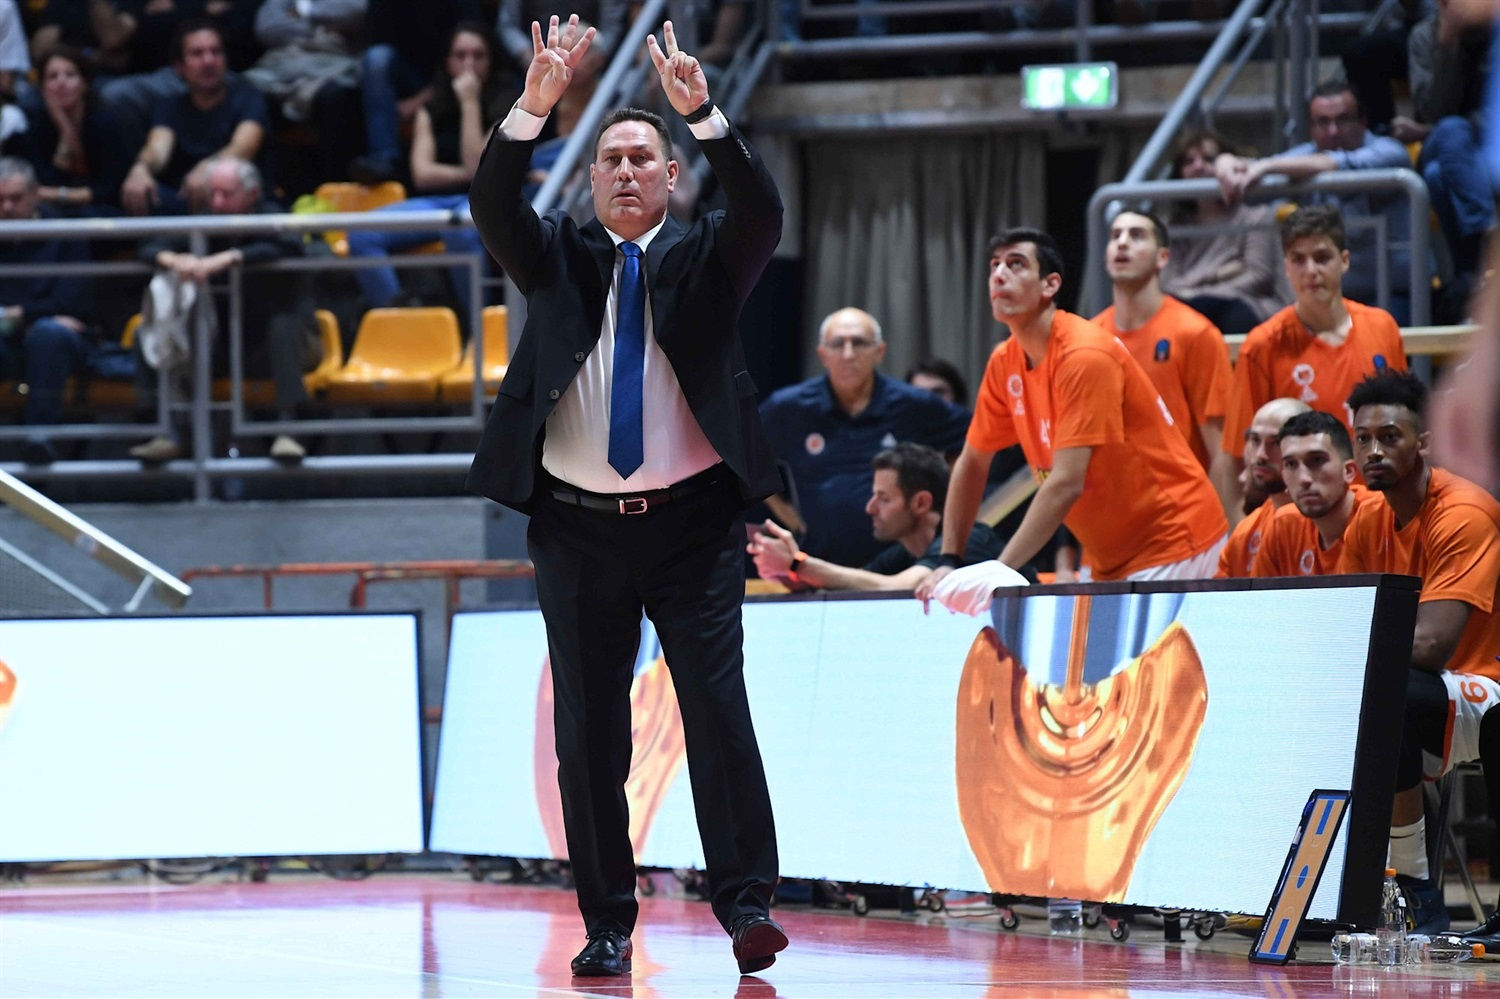 Guy Goodes - Maccabi Rishon Lezion (photo Virtus) - EC19